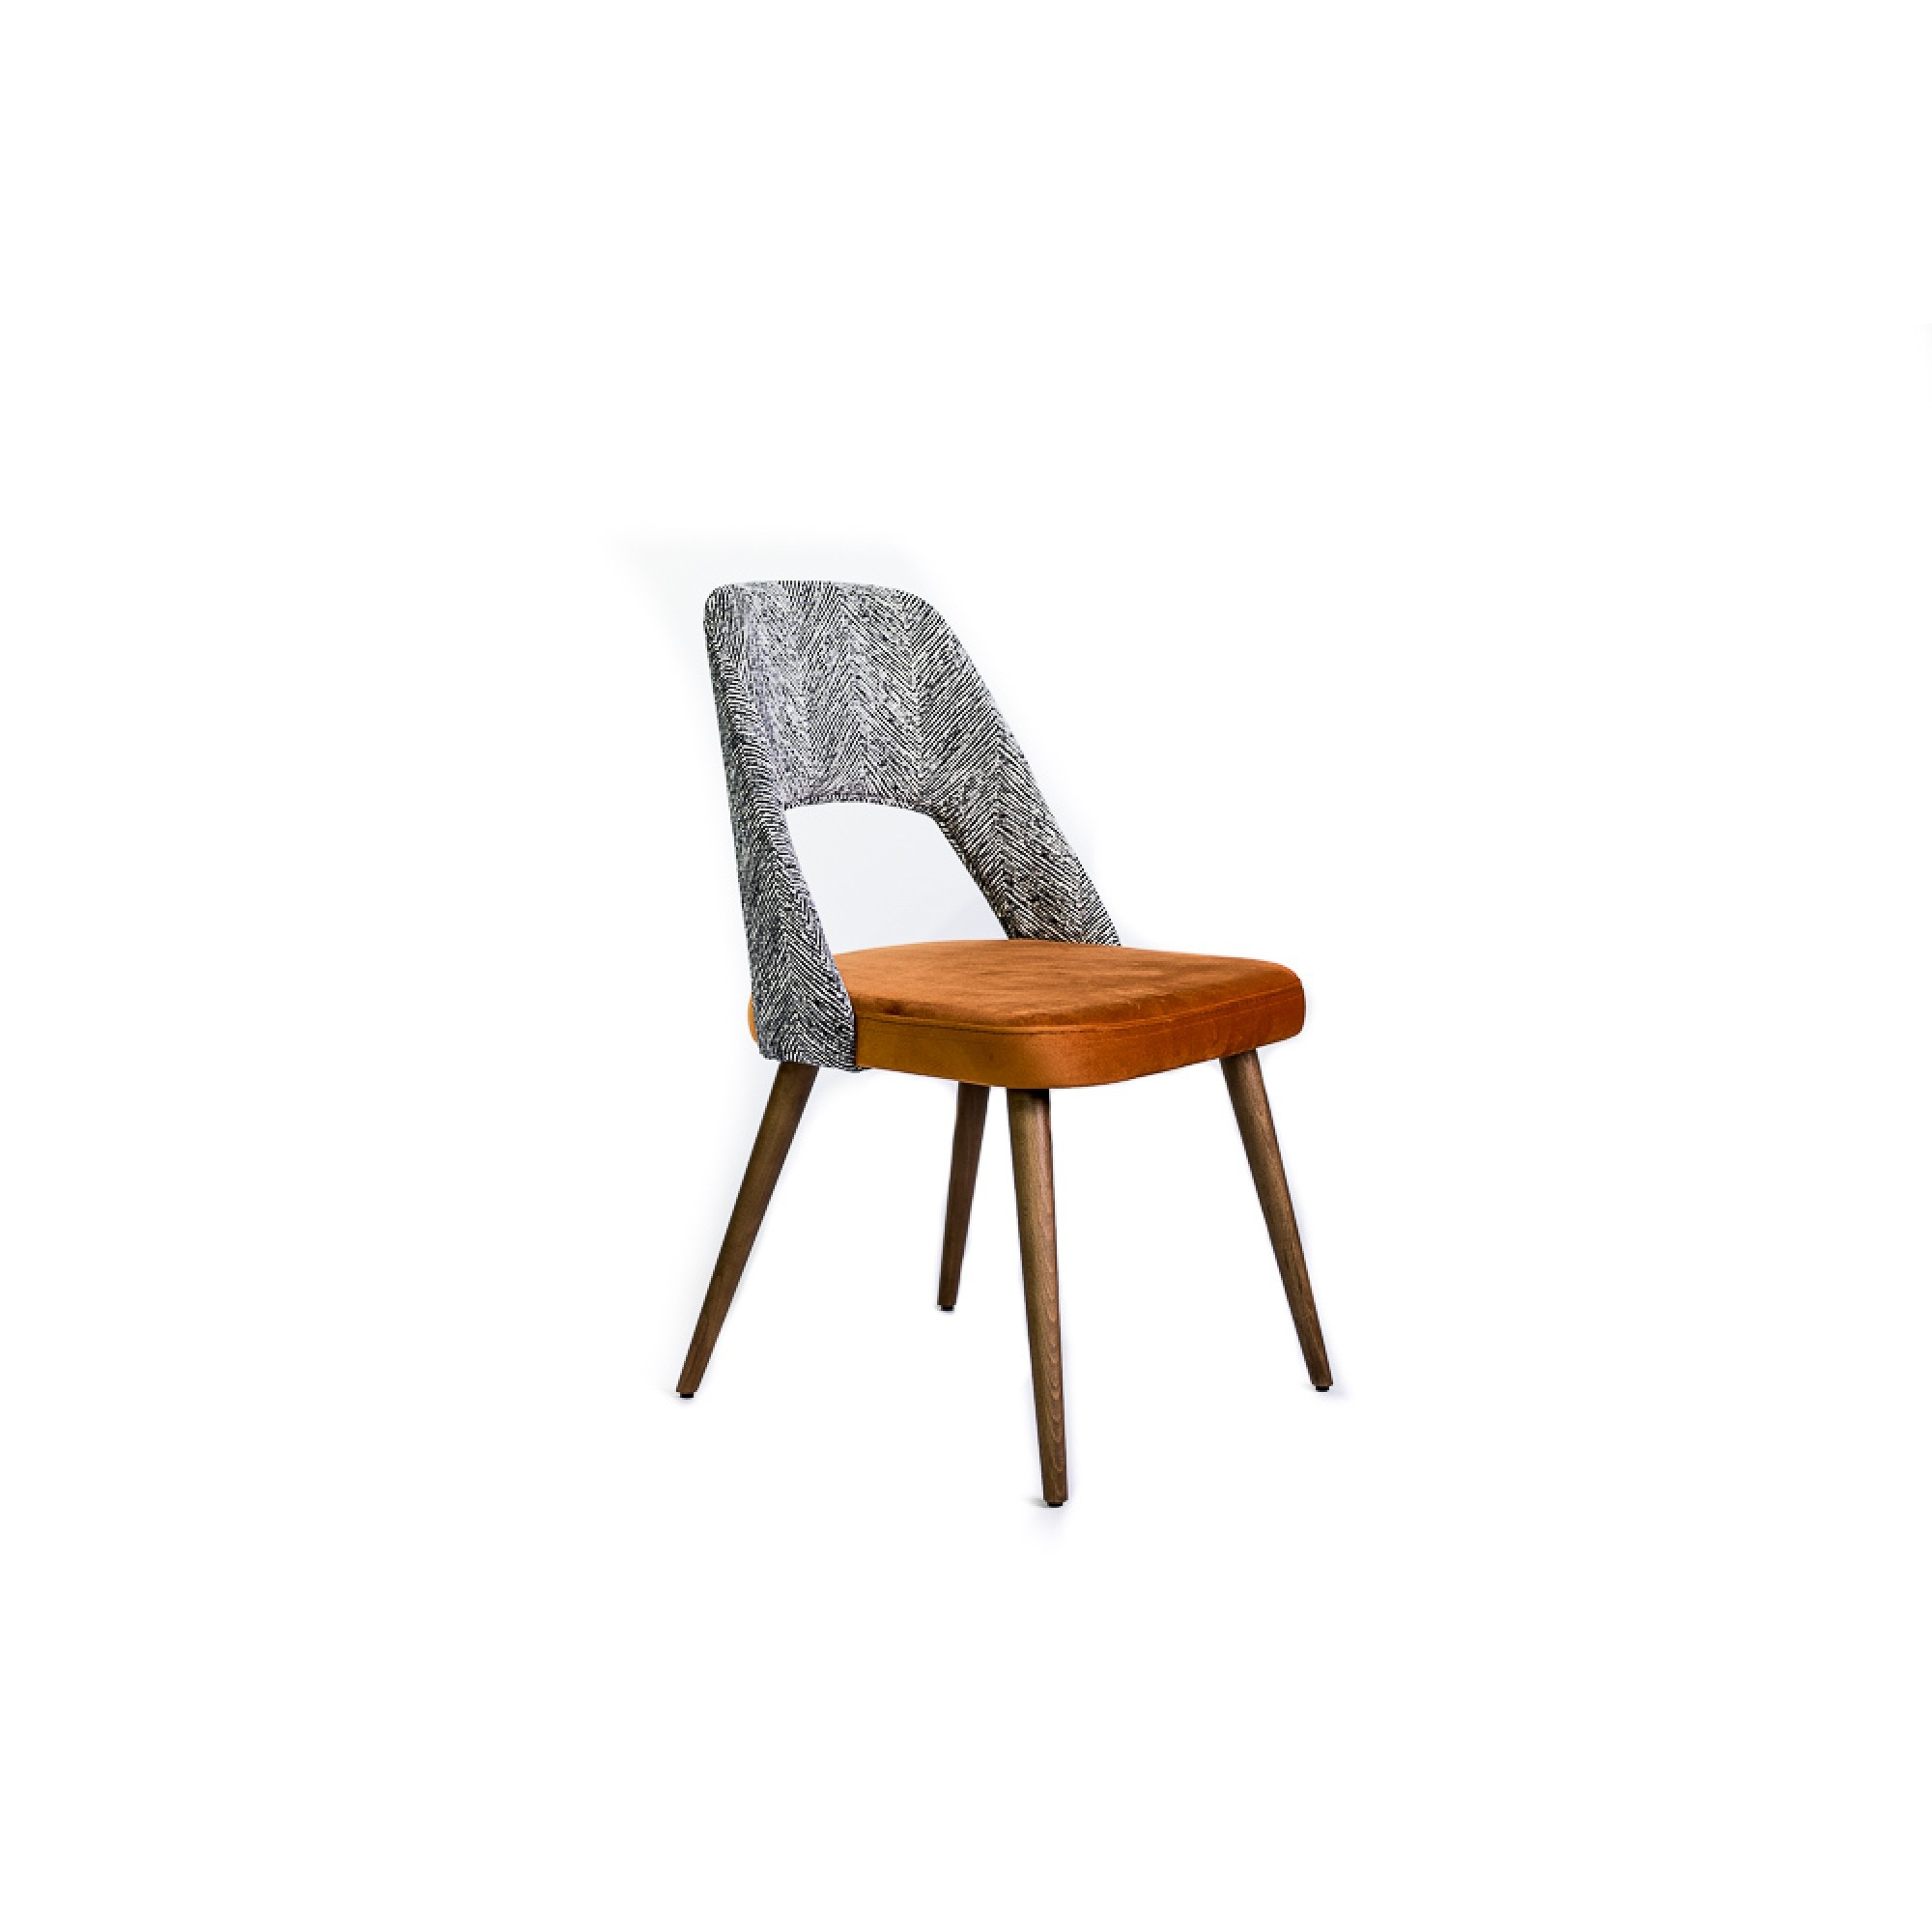 Chair without handles and wooden legs, upholstered in copper velvet and zebra graphics - BLANCK